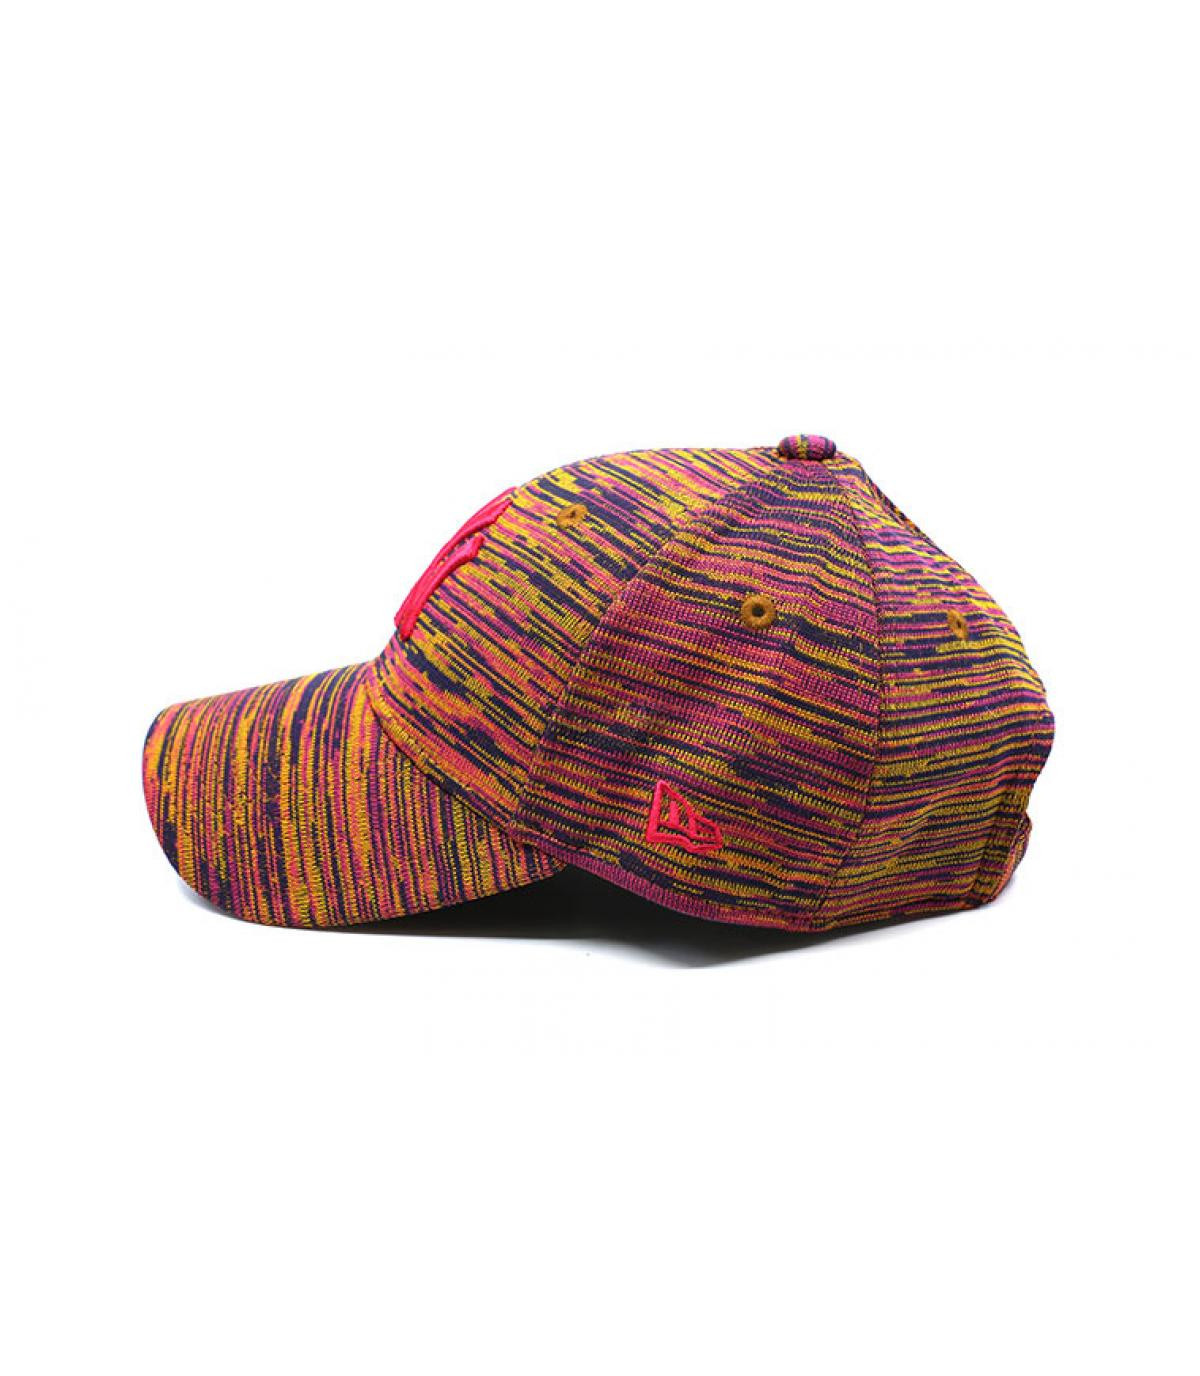 Details Cap Wmns Enginnered Fit NY 9Forty navy beetroot purple gold - Abbildung 4